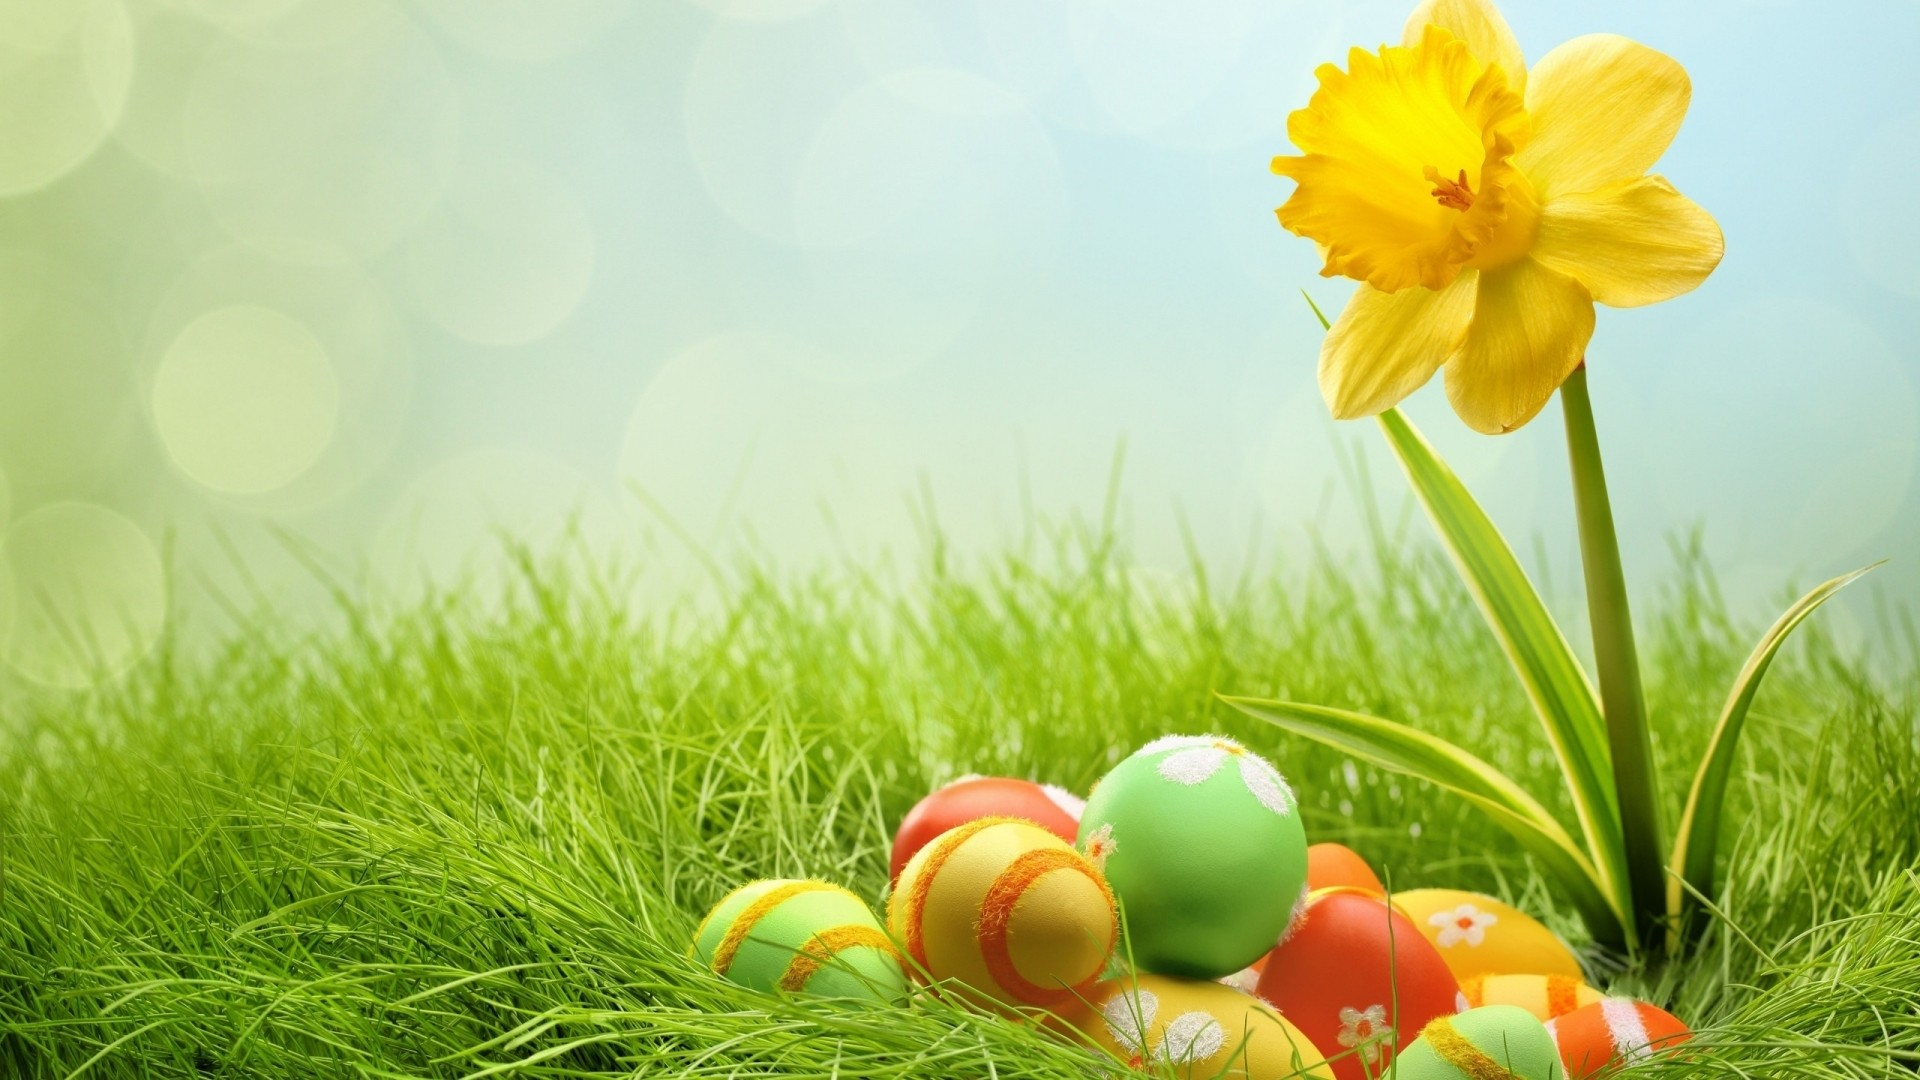 Easter 2020 Wallpaper For Pc